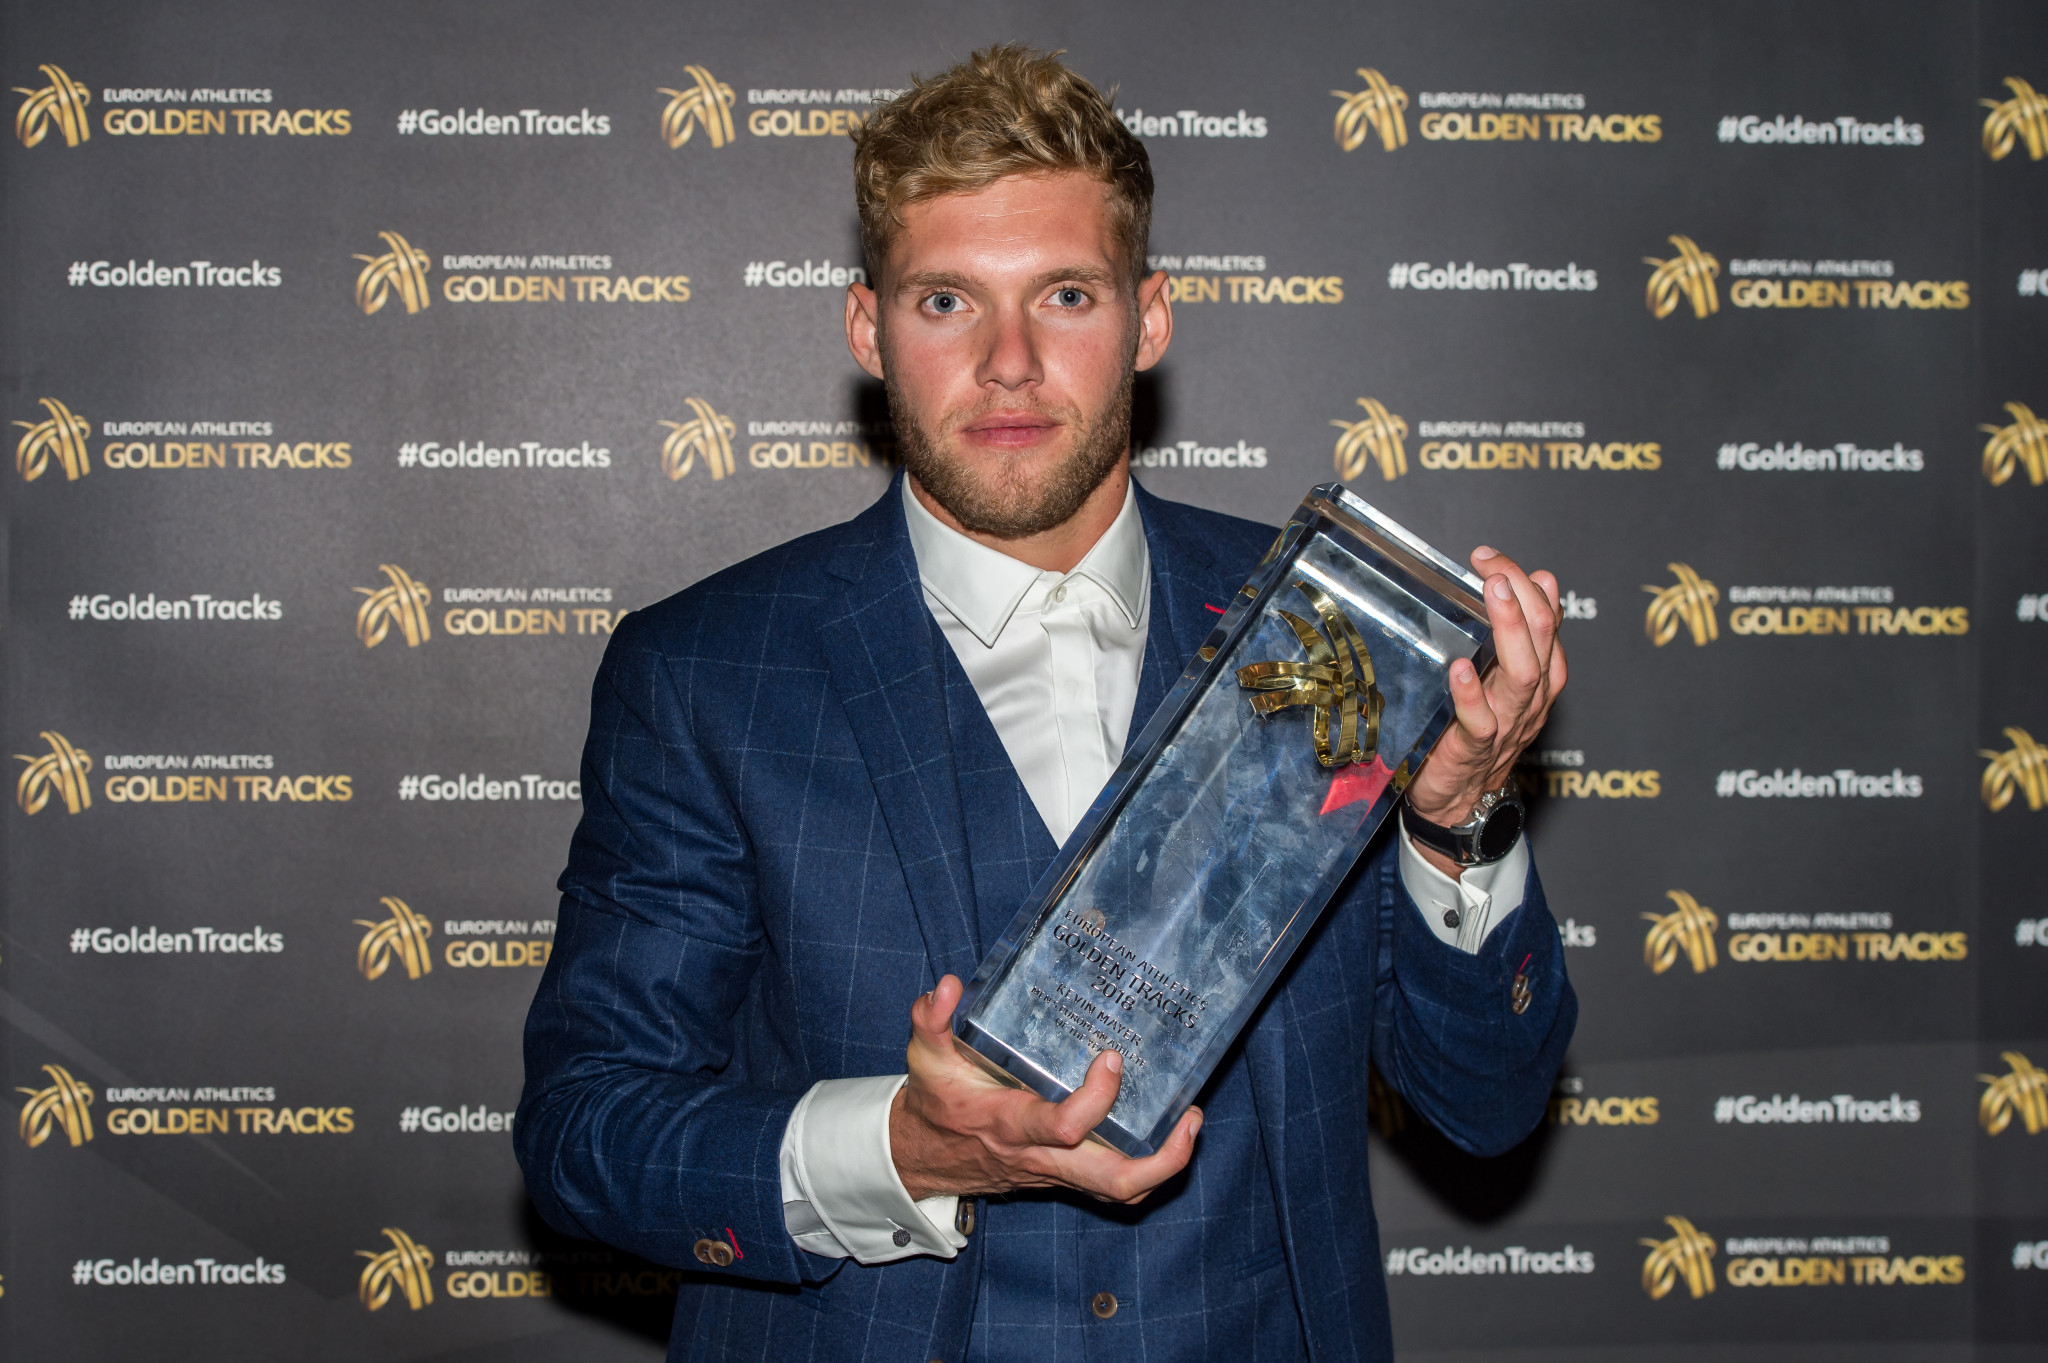 Kevin Mayer was named European Athlete of the Year at the Golden Tracks award ceremony, with Dina Asher-Smith winning the women's award ©Getty Images